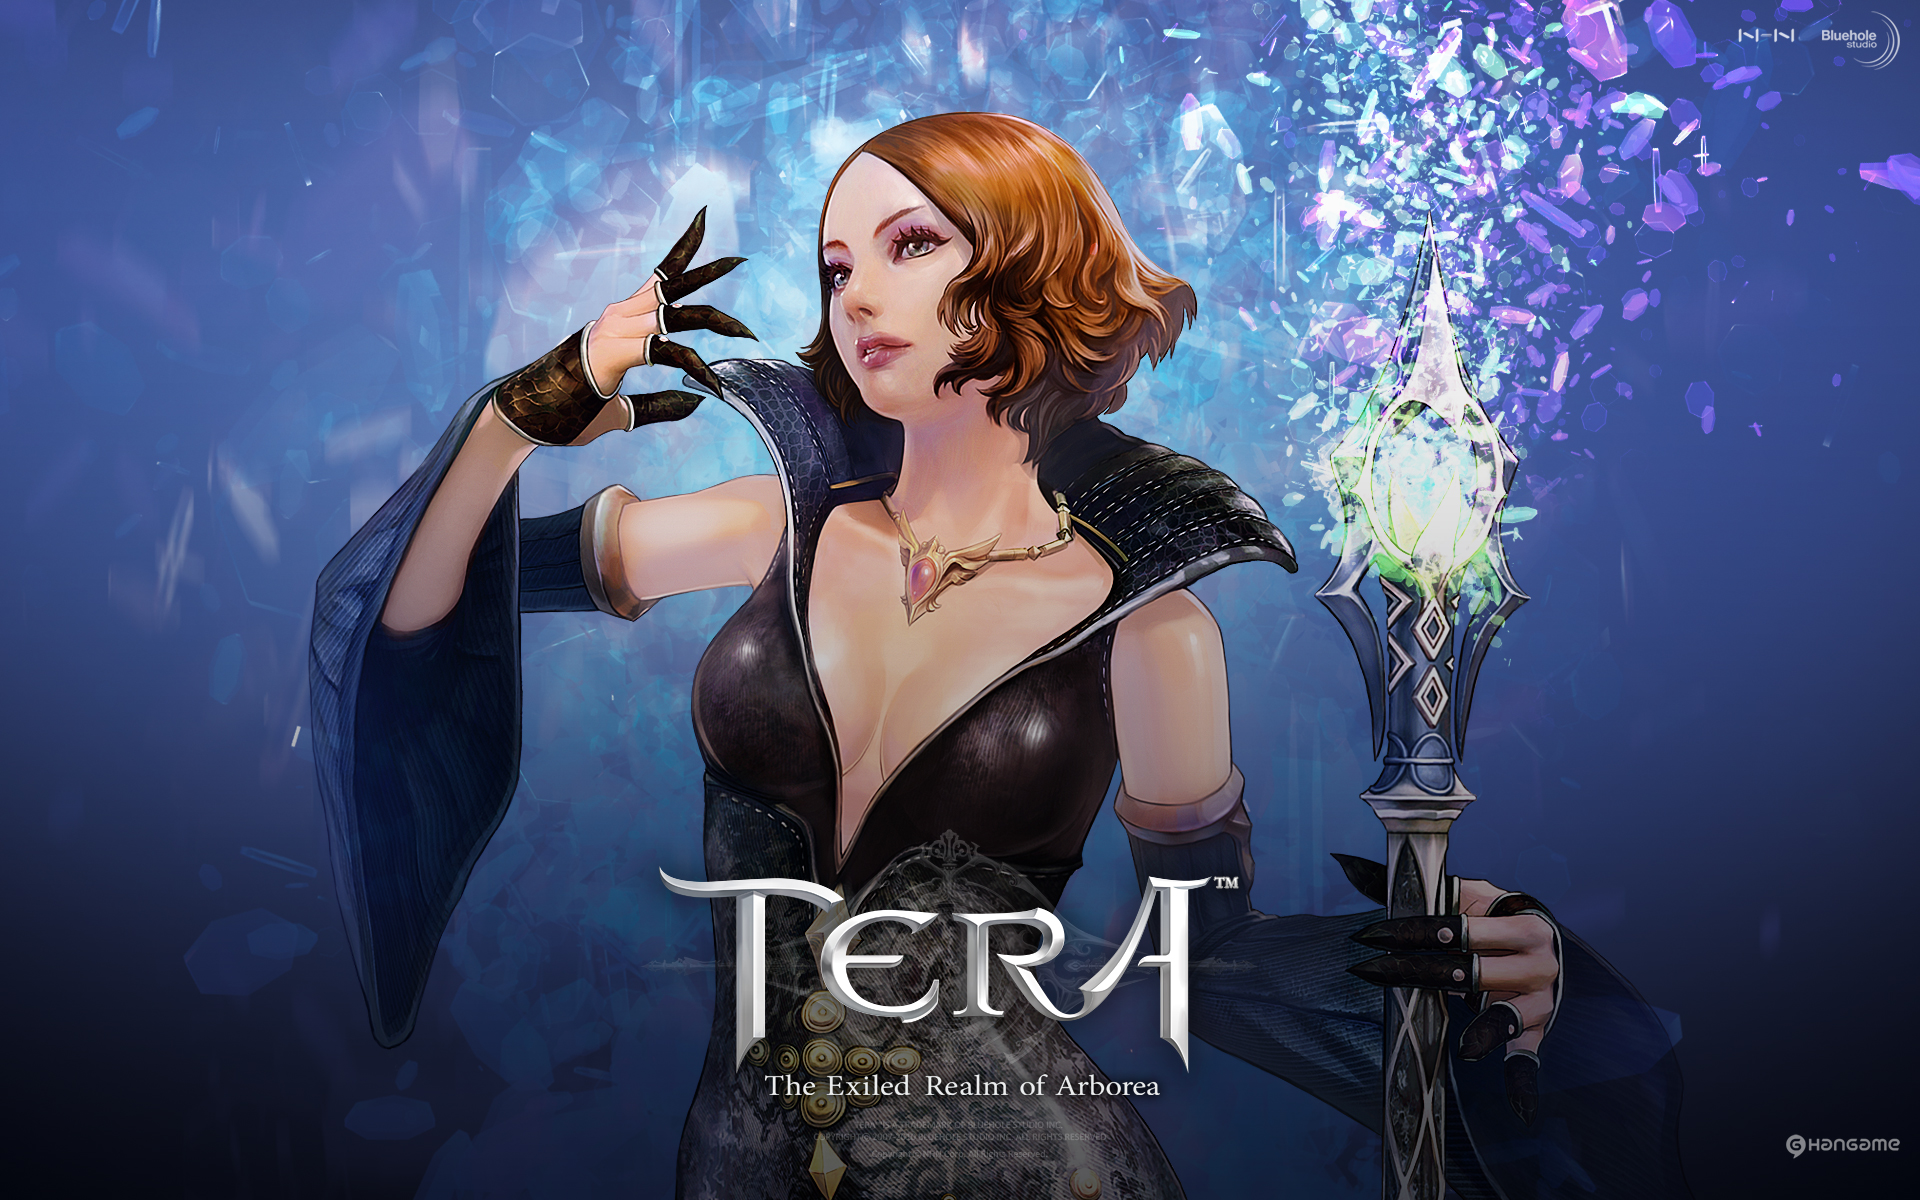 Tera wallpaper 12